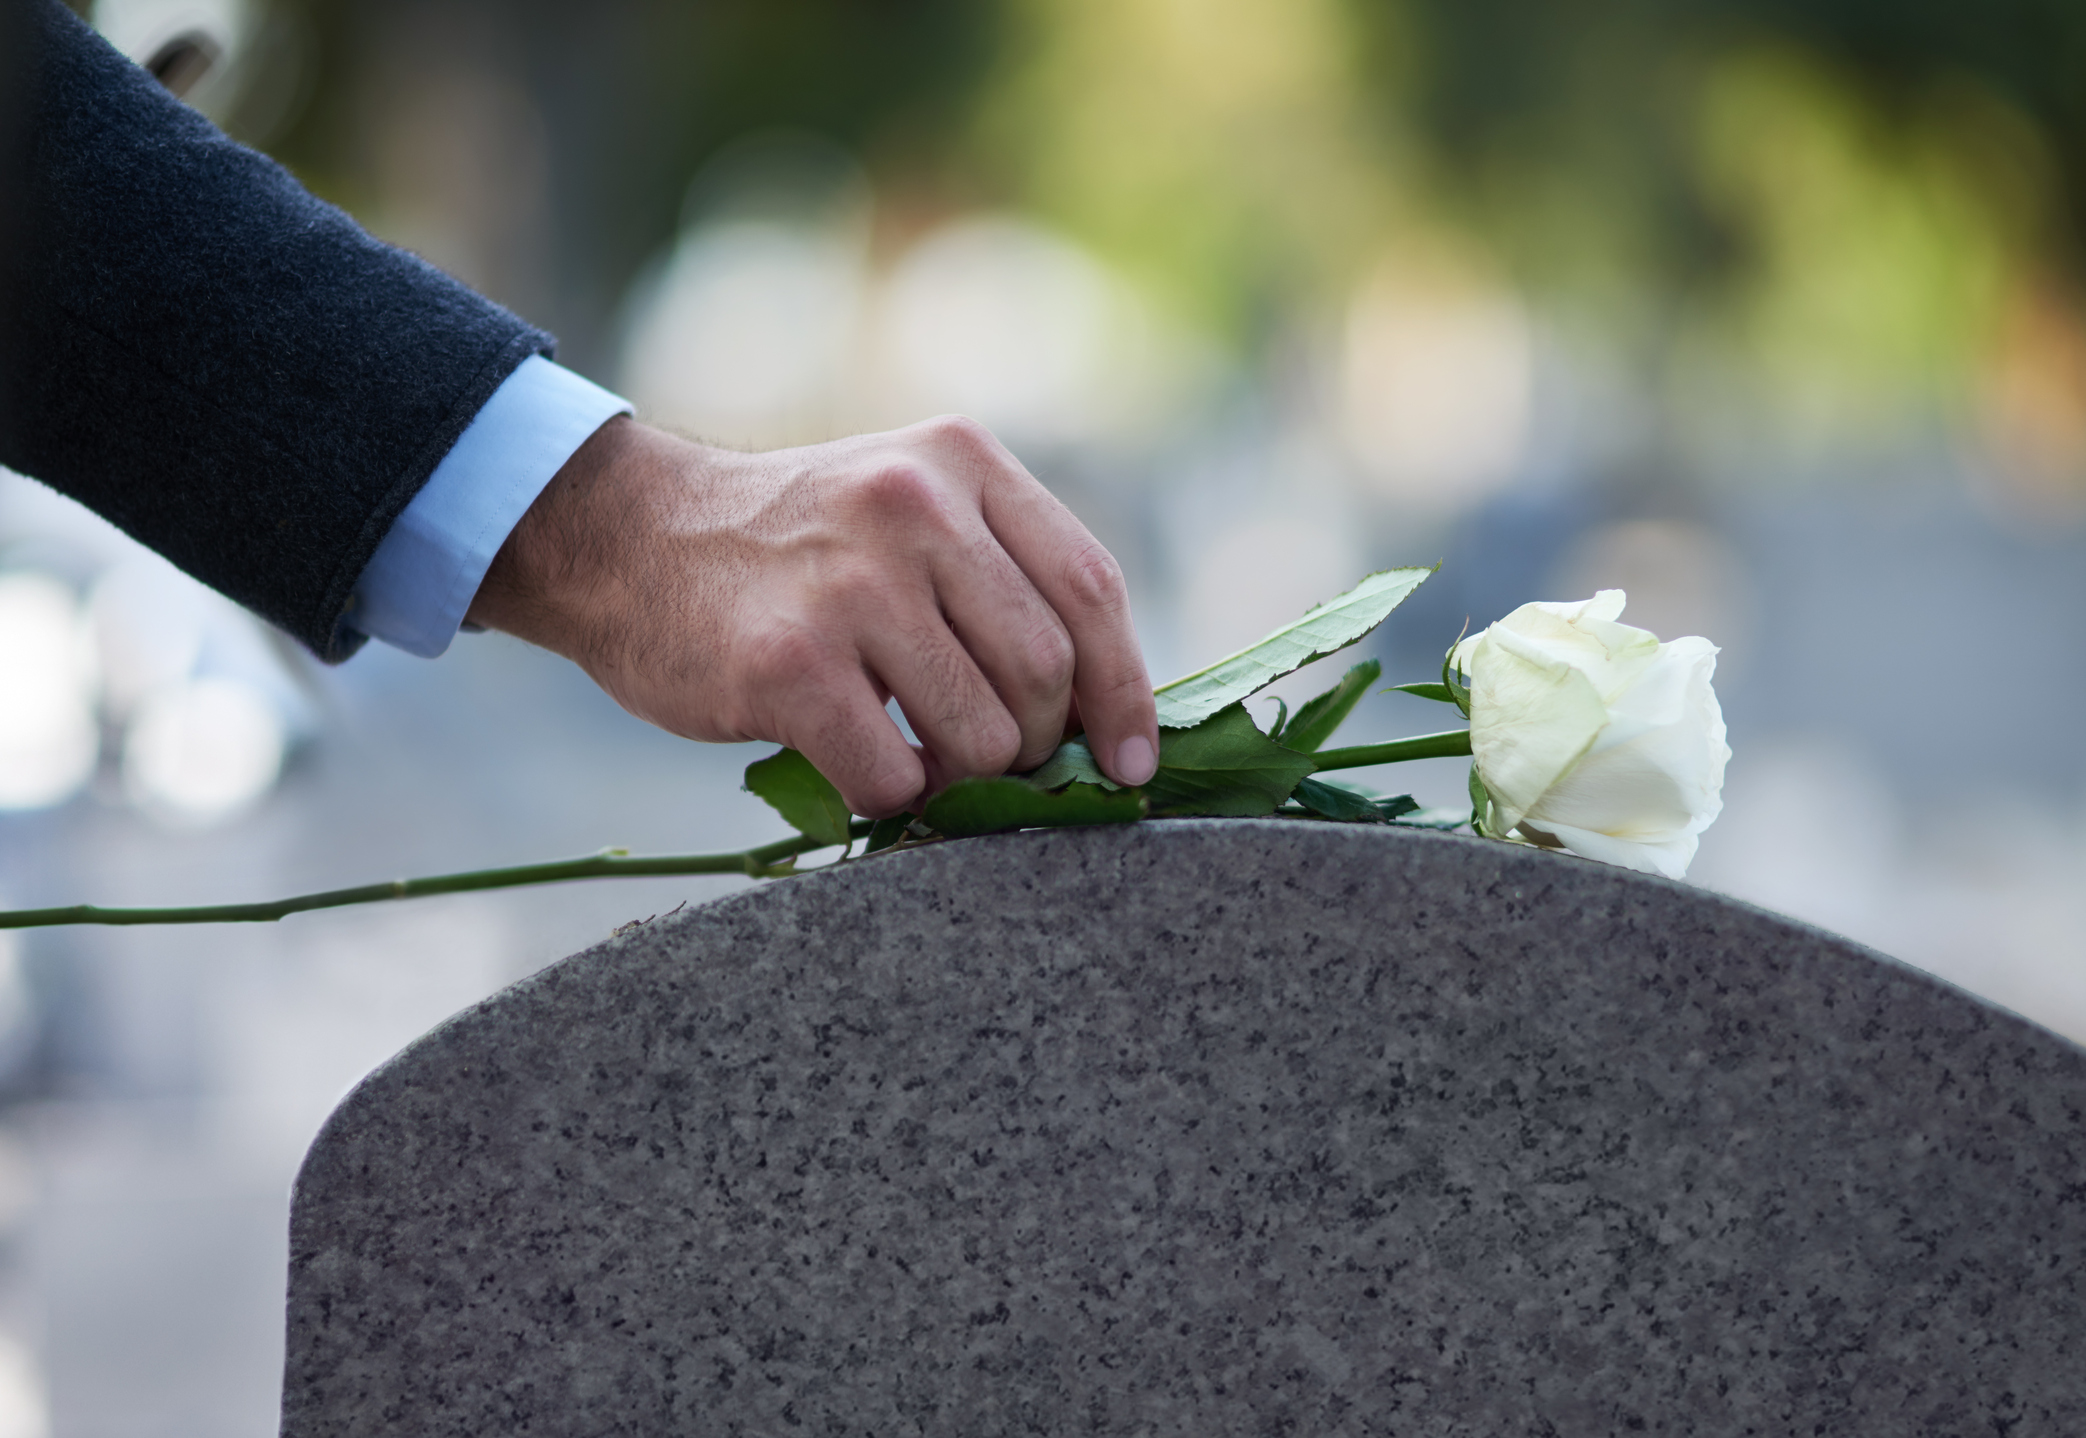 putting flower on grave